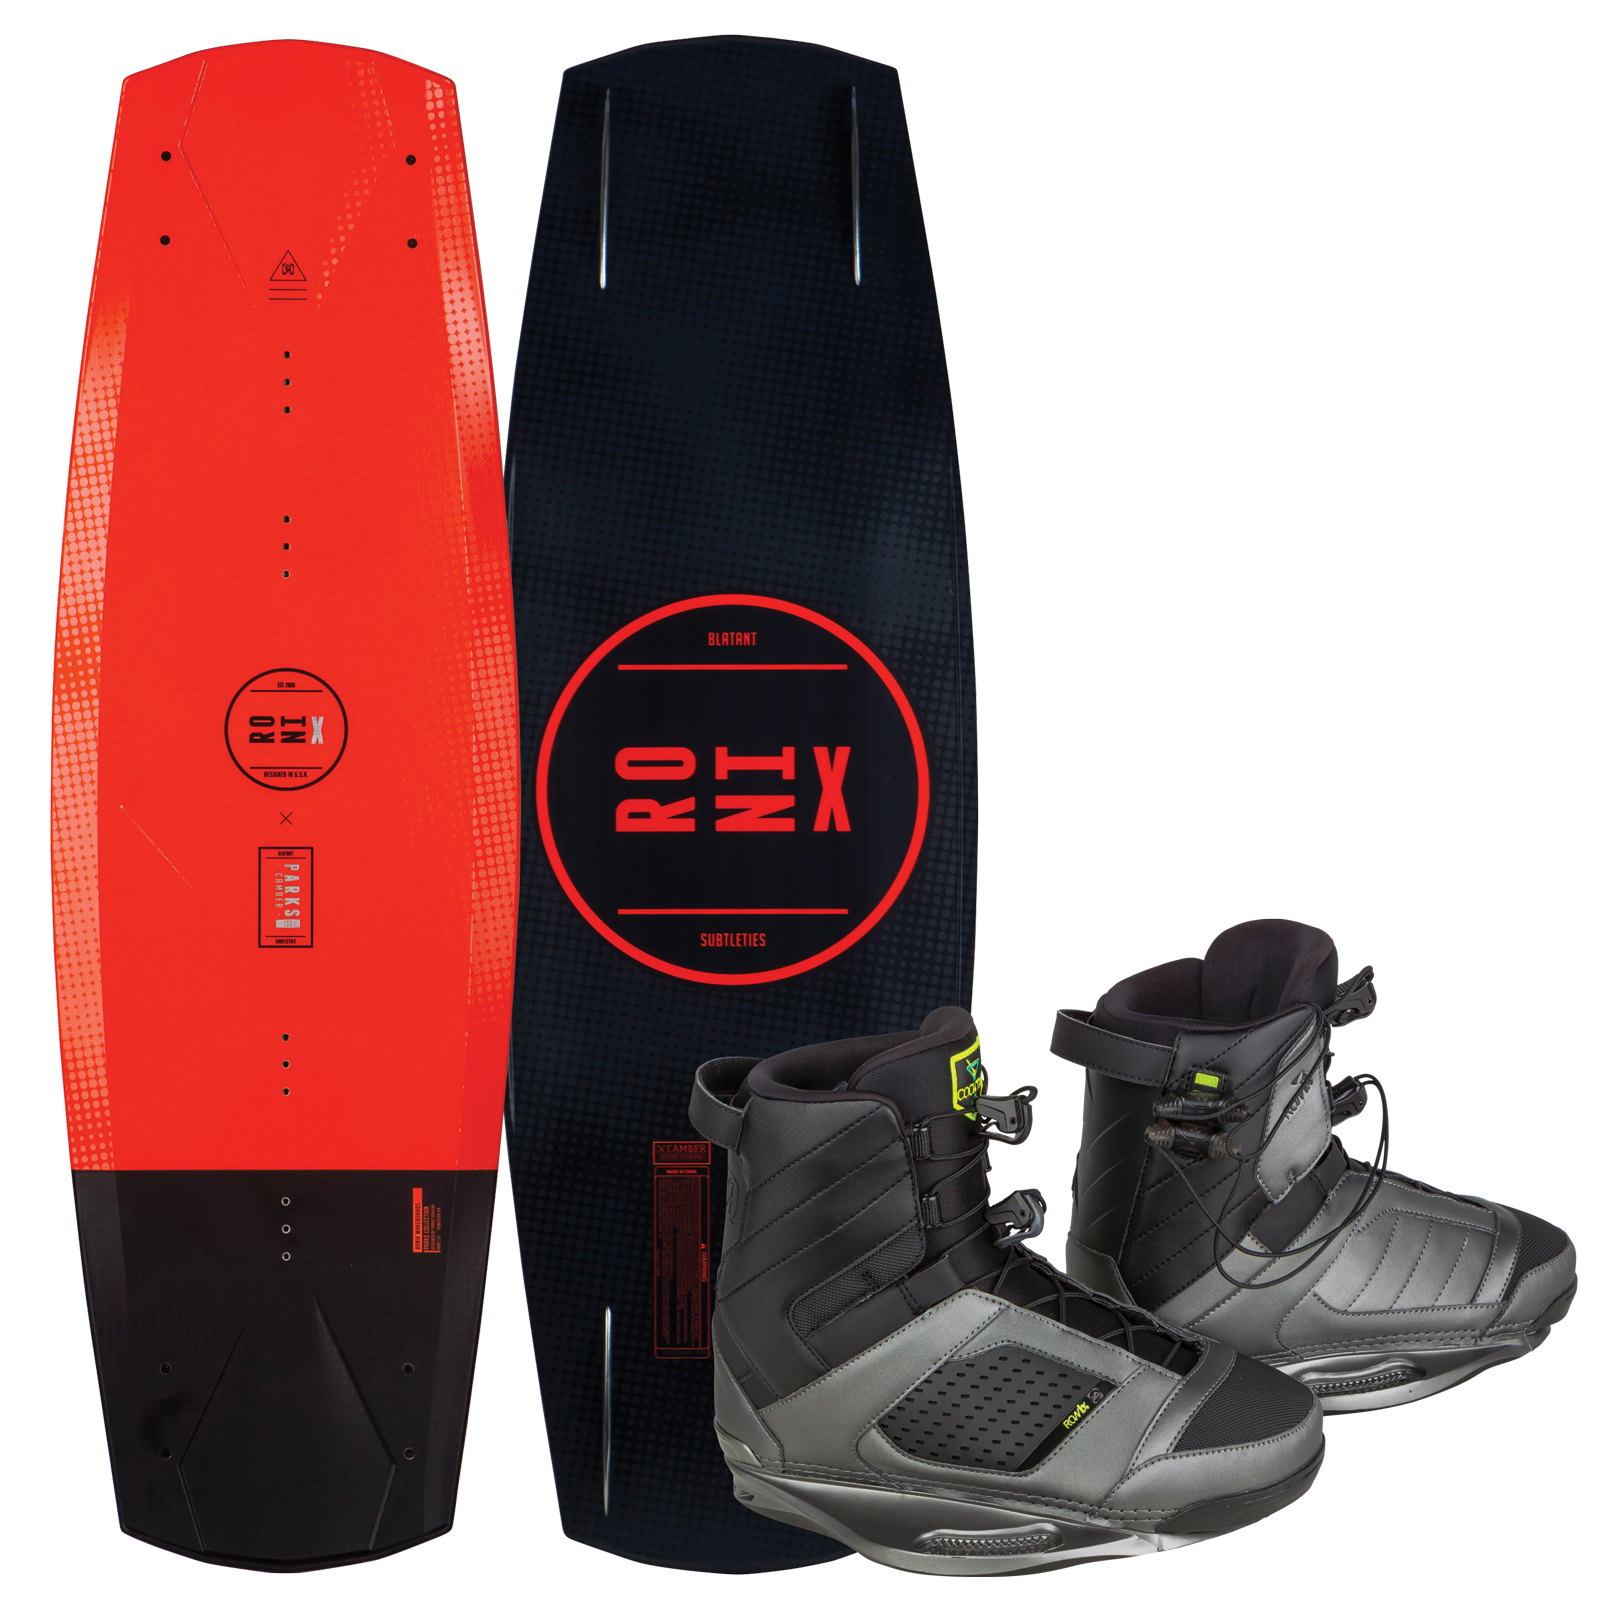 PARKS MODELLO 134 W/ COCKTAIL PACKAGE RONIX 2017